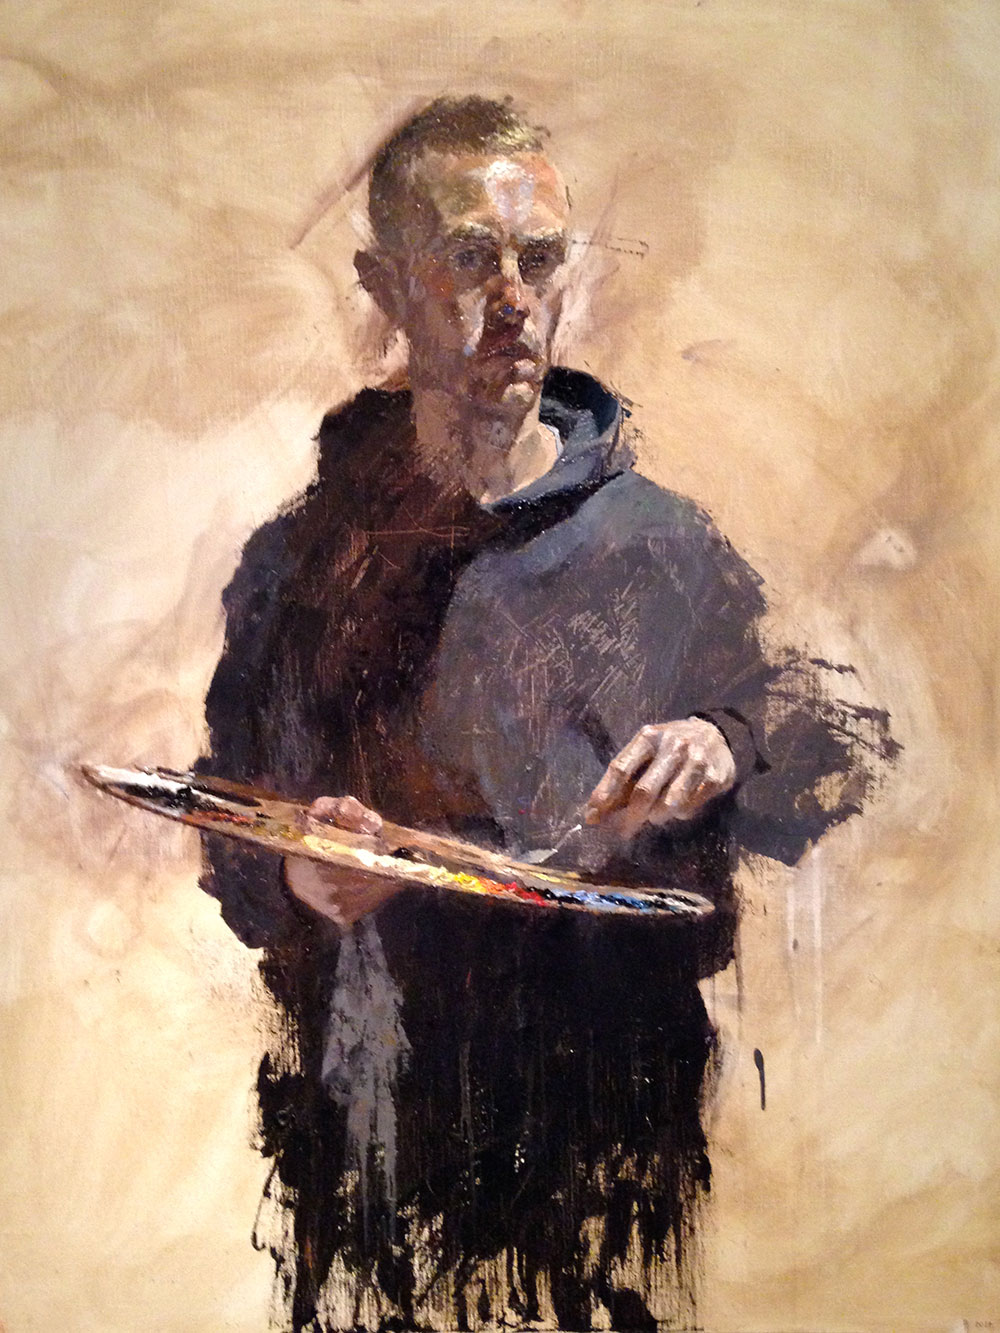 Self Portrait with Palette. 2014, oil on canvas, 73 x 92 cm Benjamin Hope